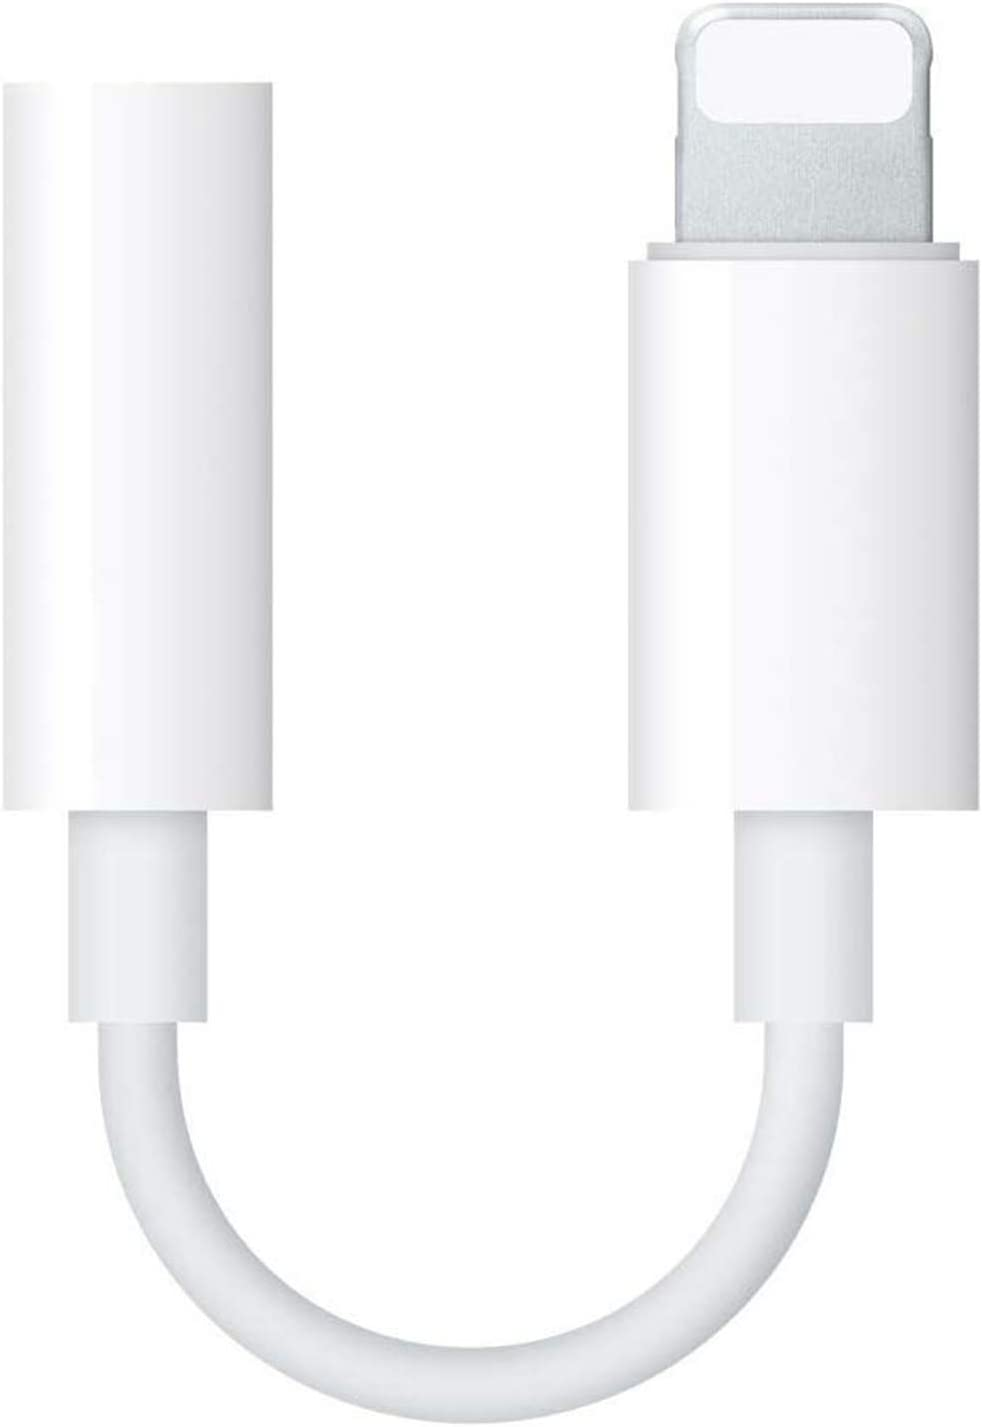 iOS 11,12,13 Headphone Adapter Jack to 3.5mm Dongle for iPhone 8//8 Plus//7//7 Plus//X//Xs//Xs Max//XR//11//11 Pro//11 Pro Max Earphone Adaptor Audio Cable Earbuds Aux Converter 3.5 mm Headphone Adapter Jack